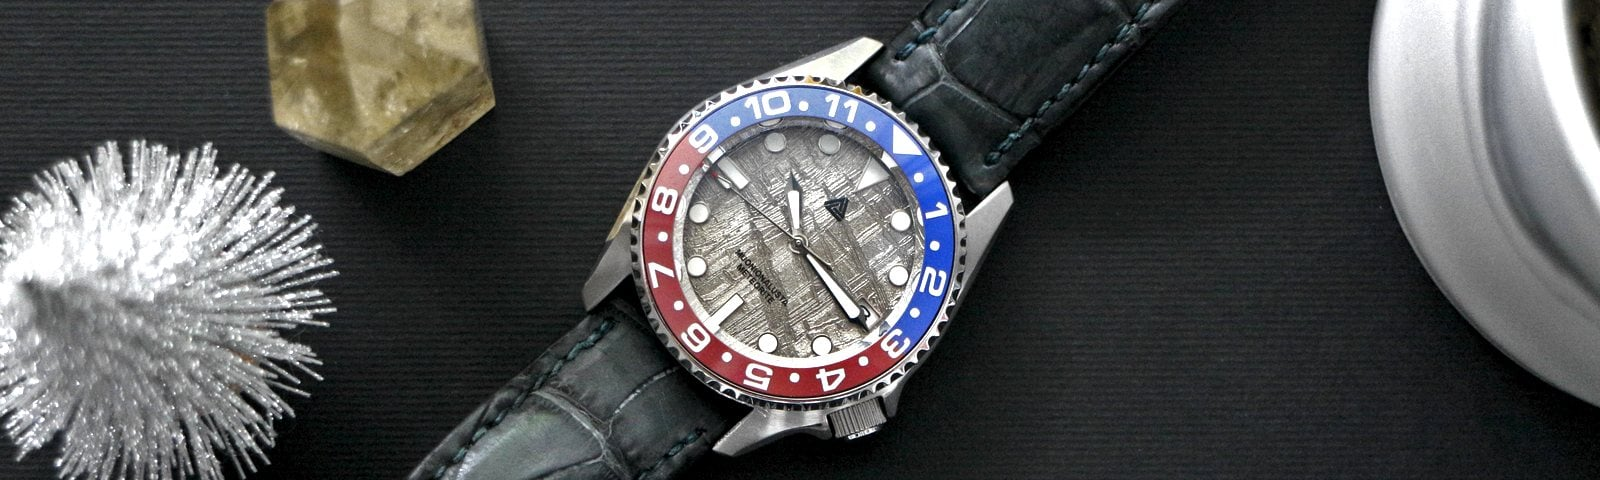 SWISS MADE Pepsi Ceramic Bezel Insert